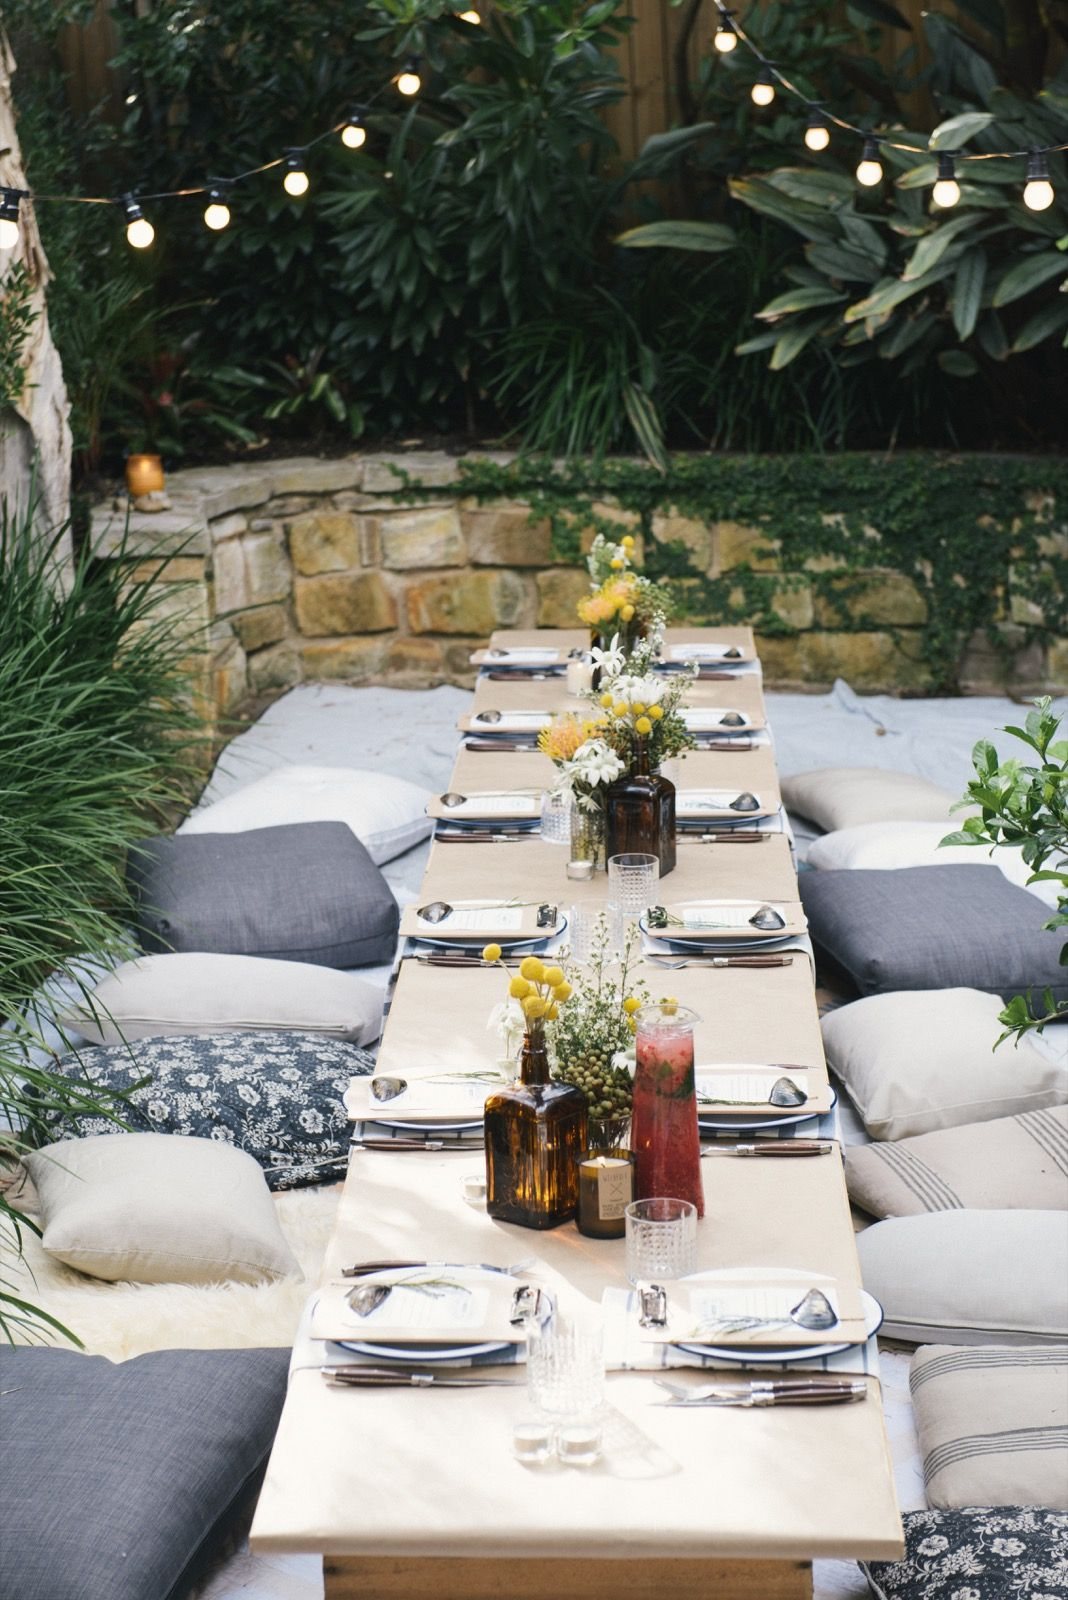 The Long Picnic Table Setting With Floor Cushions, Rugs And Festoon  Lighting, Just Crying